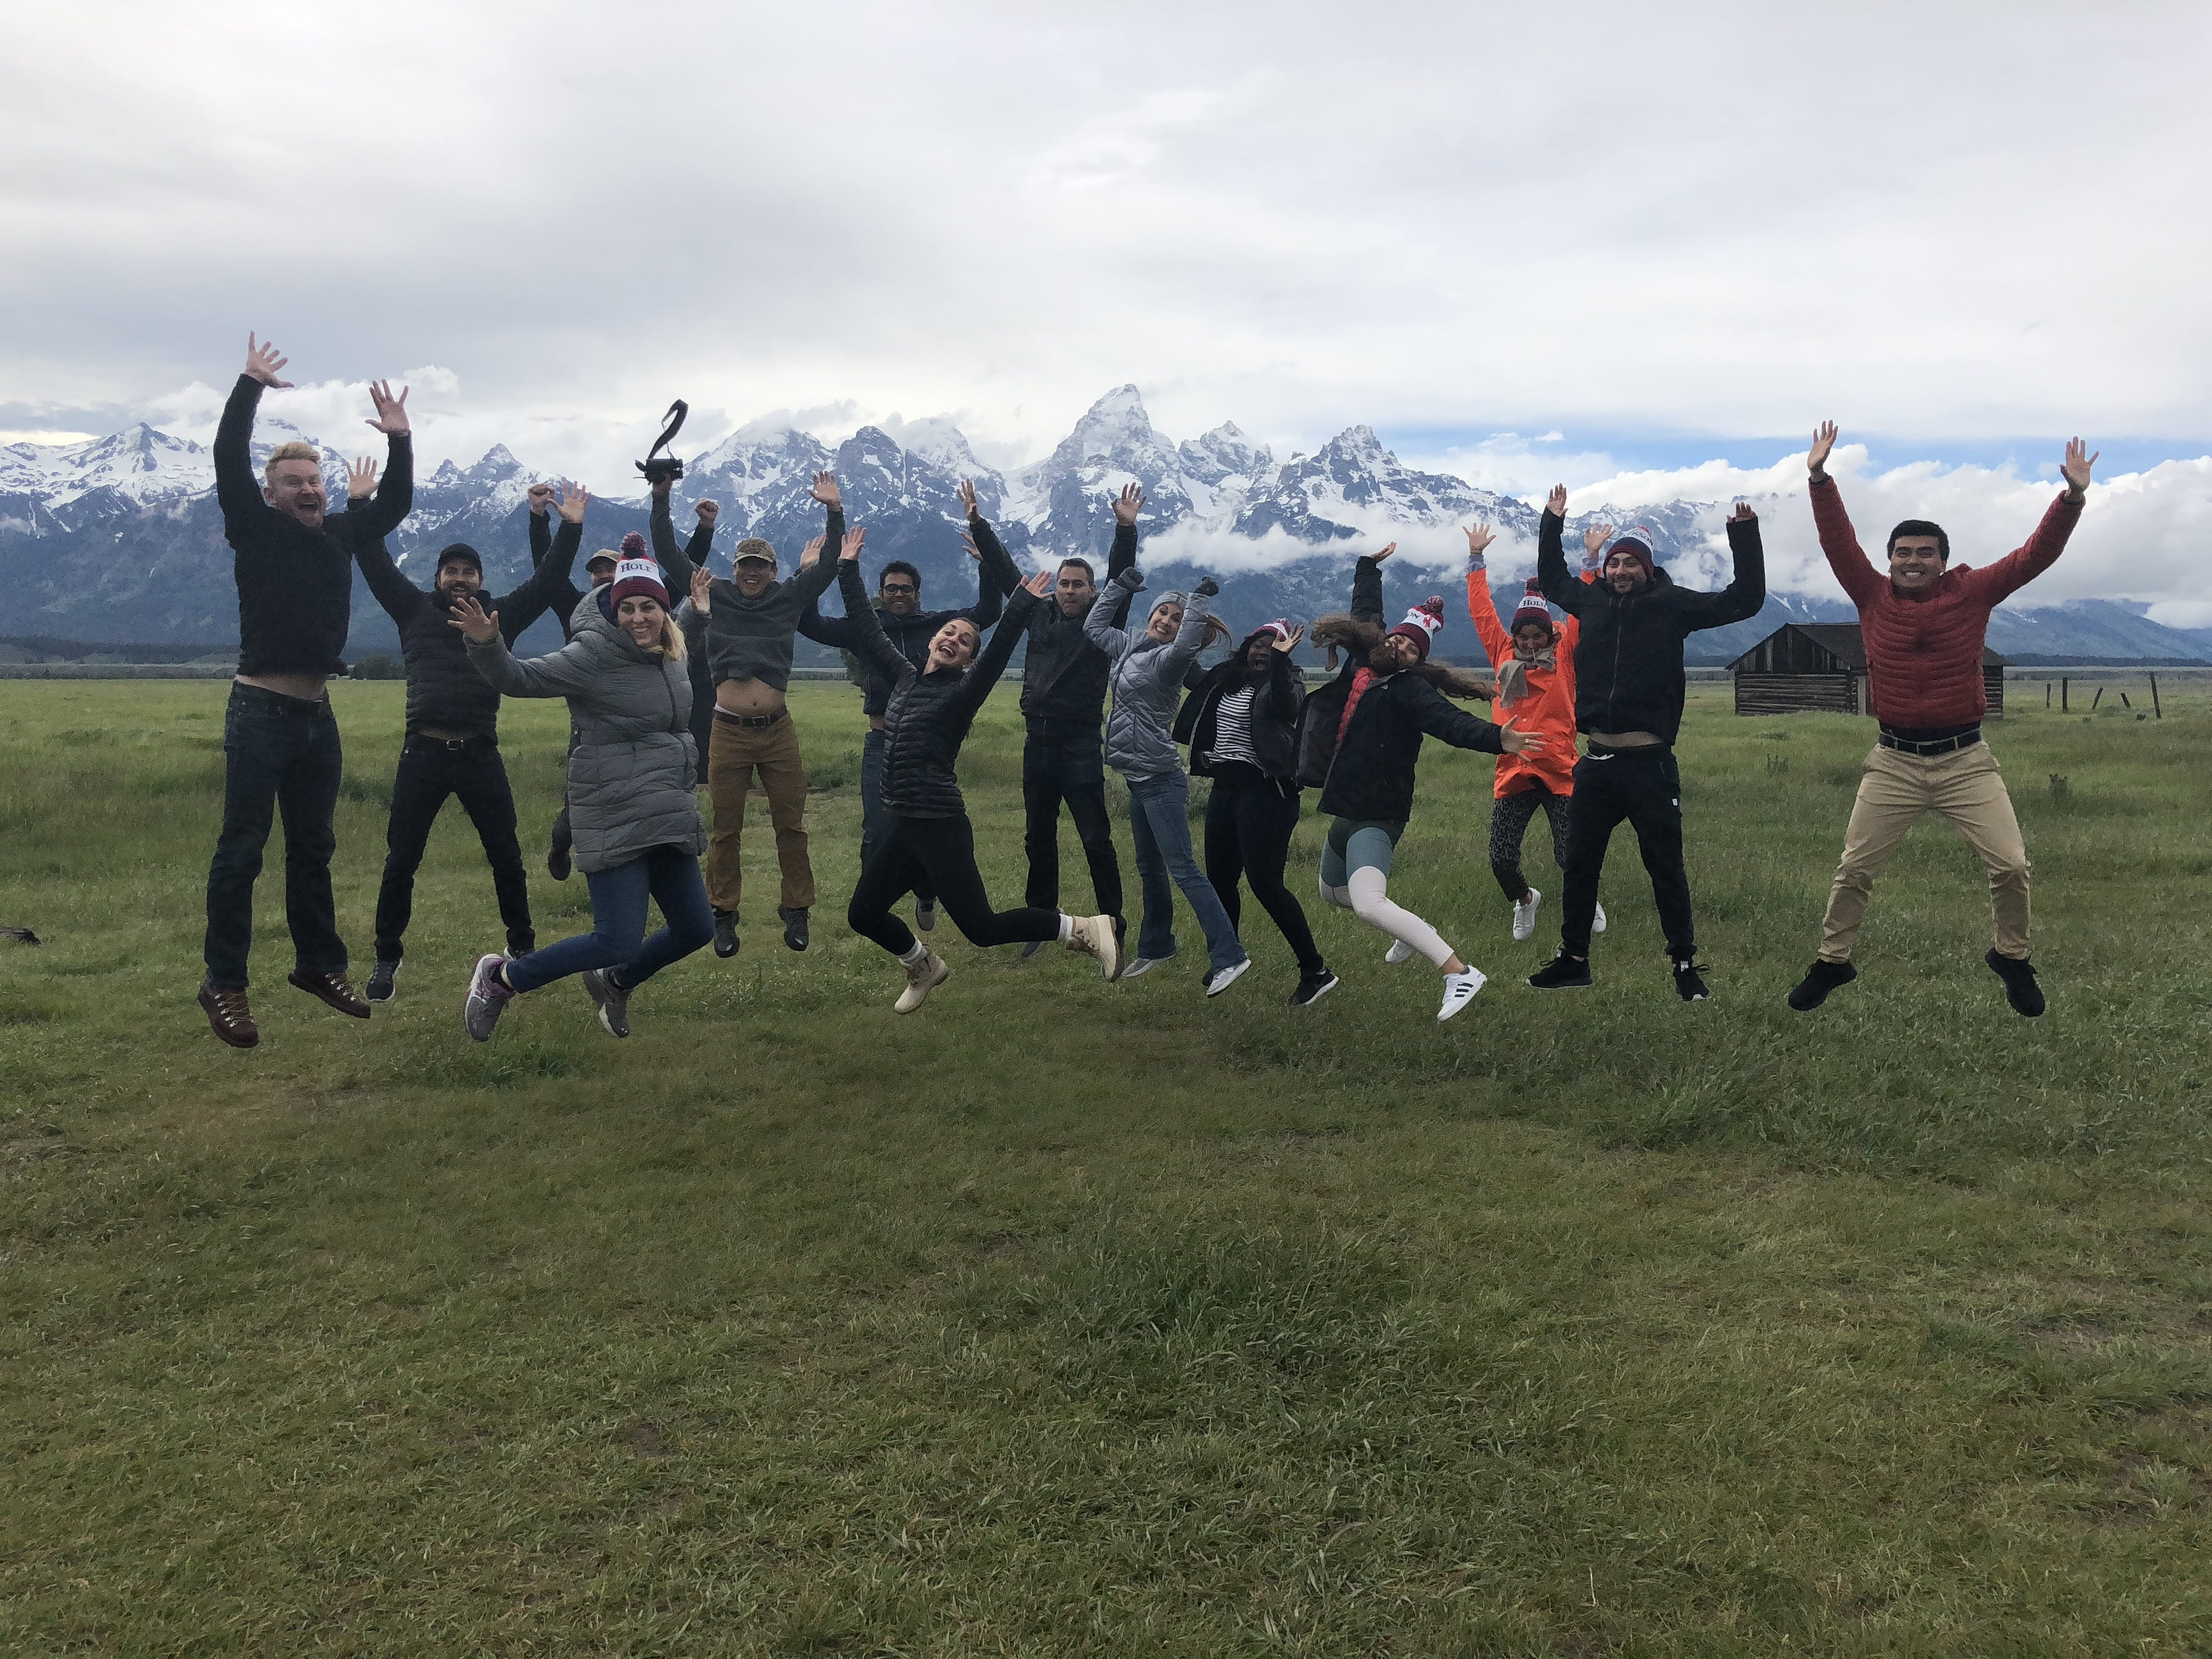 2018 Top 5 Grand Dynamics Business and Adventure Highlights